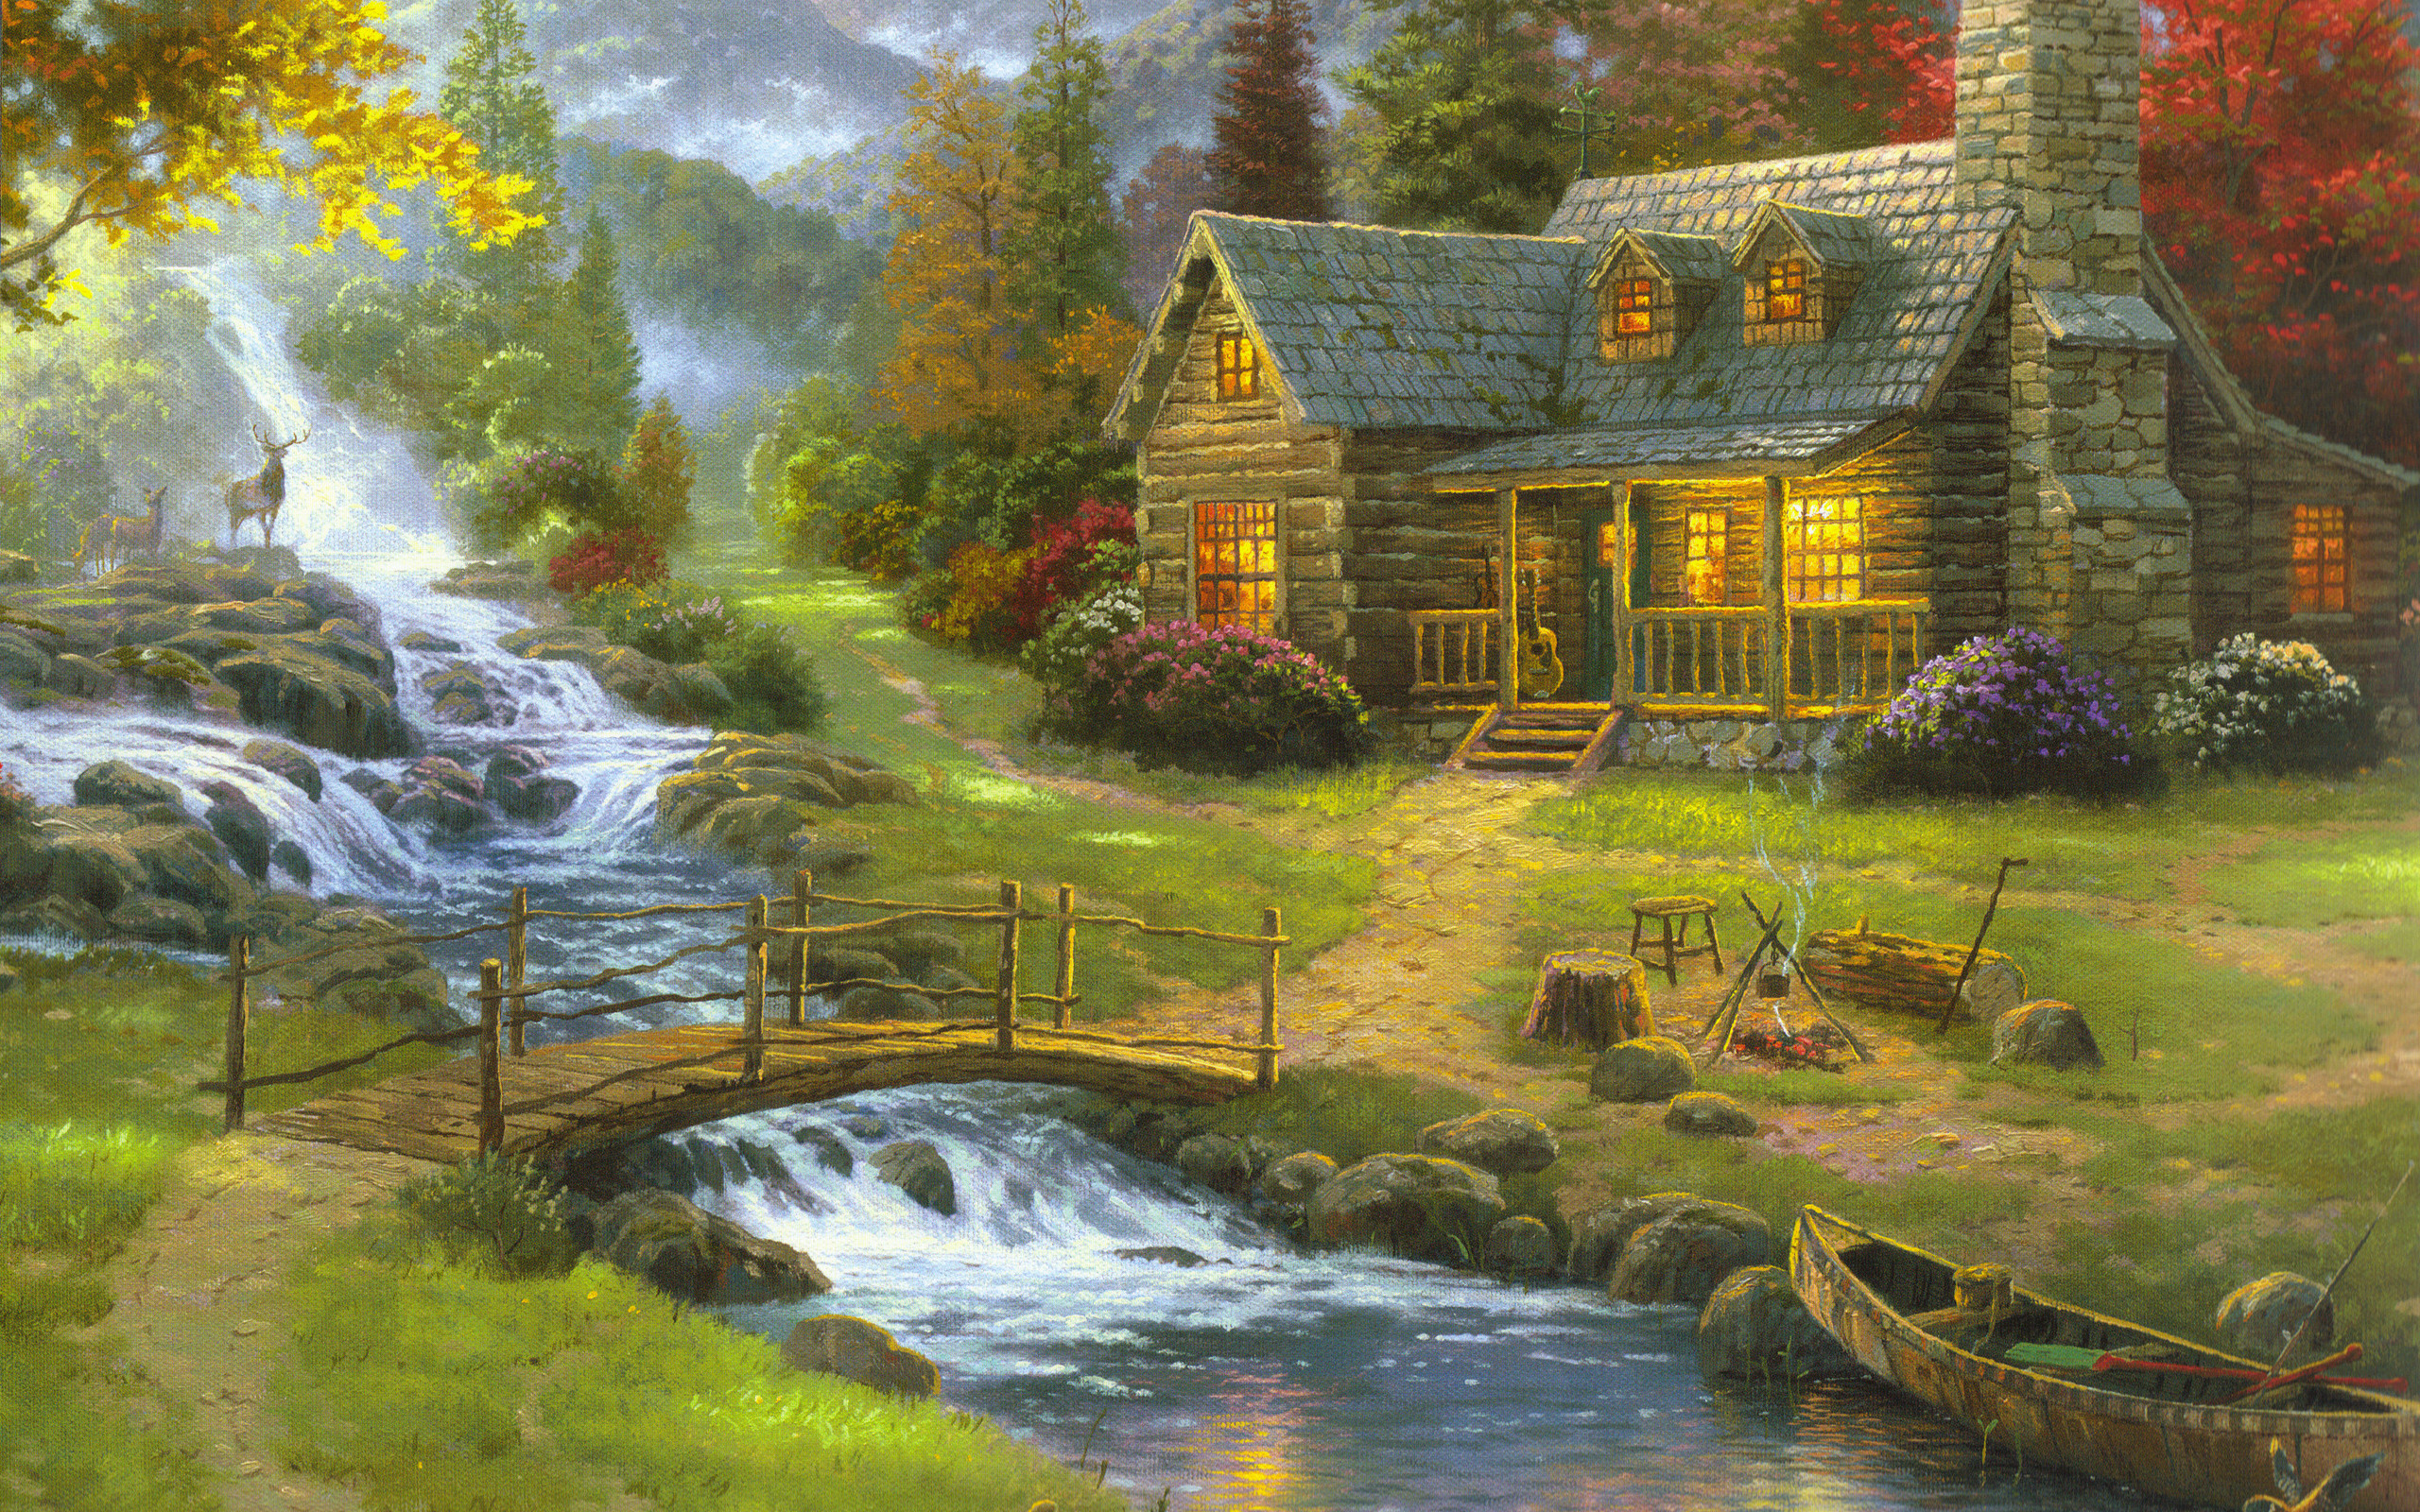 2560x1600 Artistic - Painting House Artistic Waterfall Mountain Cottage Canoe Bridge  River Deer Wallpaper